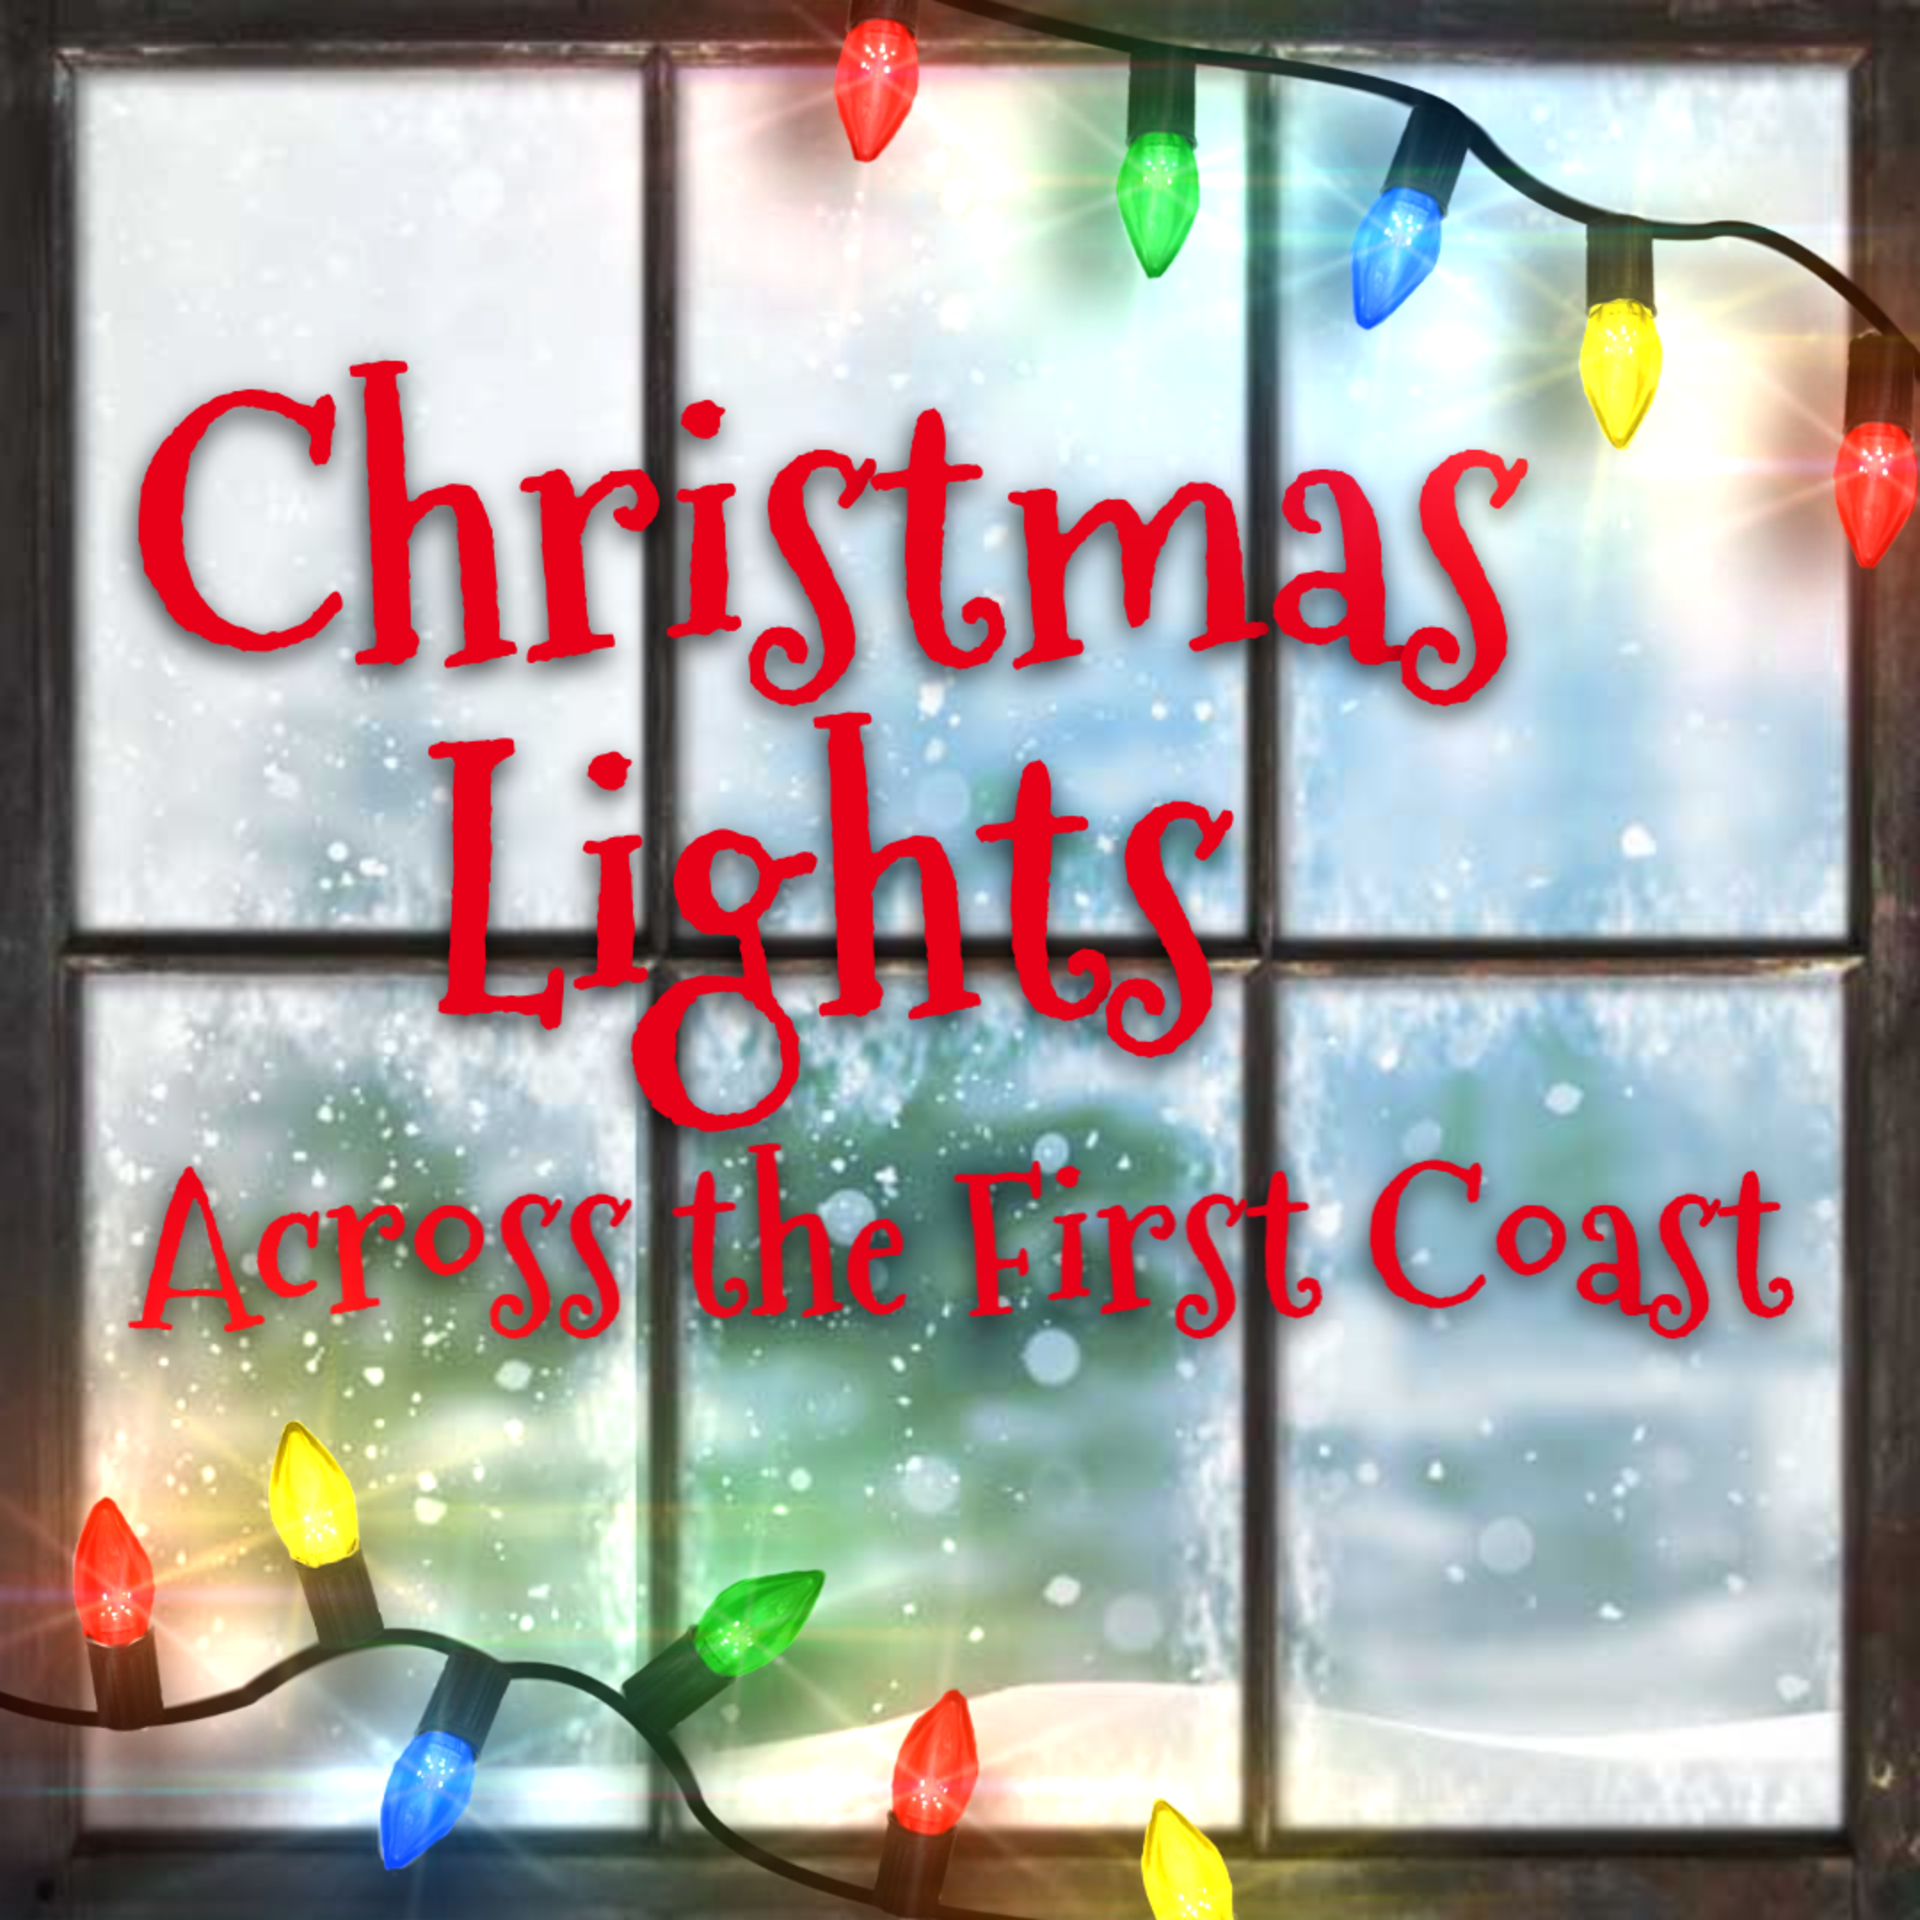 Christmas Lights Viewing Across the First Coast